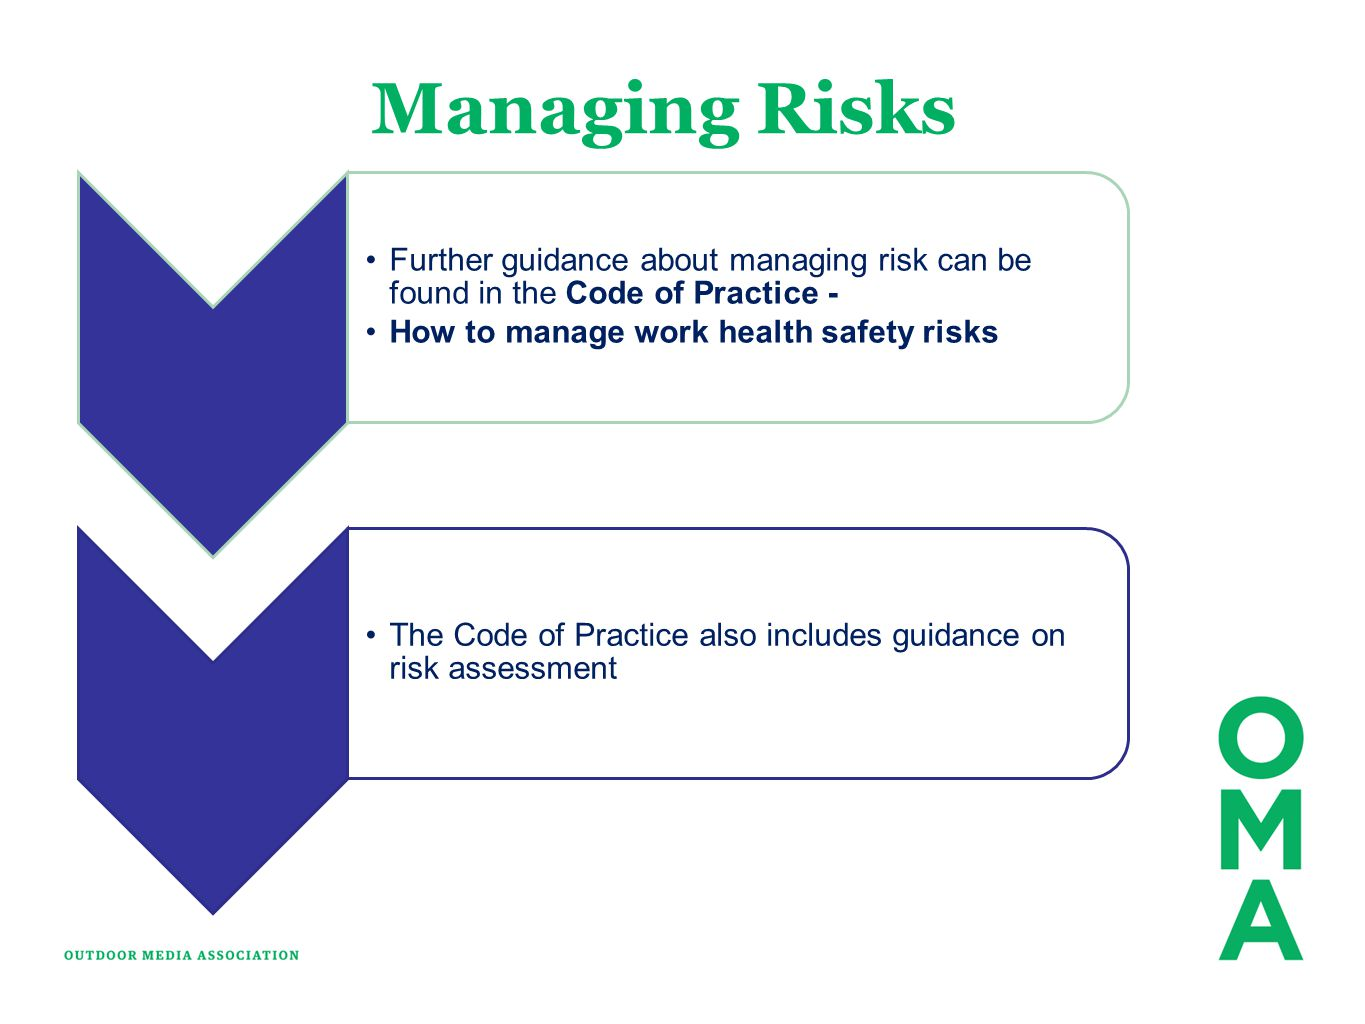 Managing Risks Further guidance about managing risk can be found in the Code of Practice - How to manage work health safety risks The Code of Practice